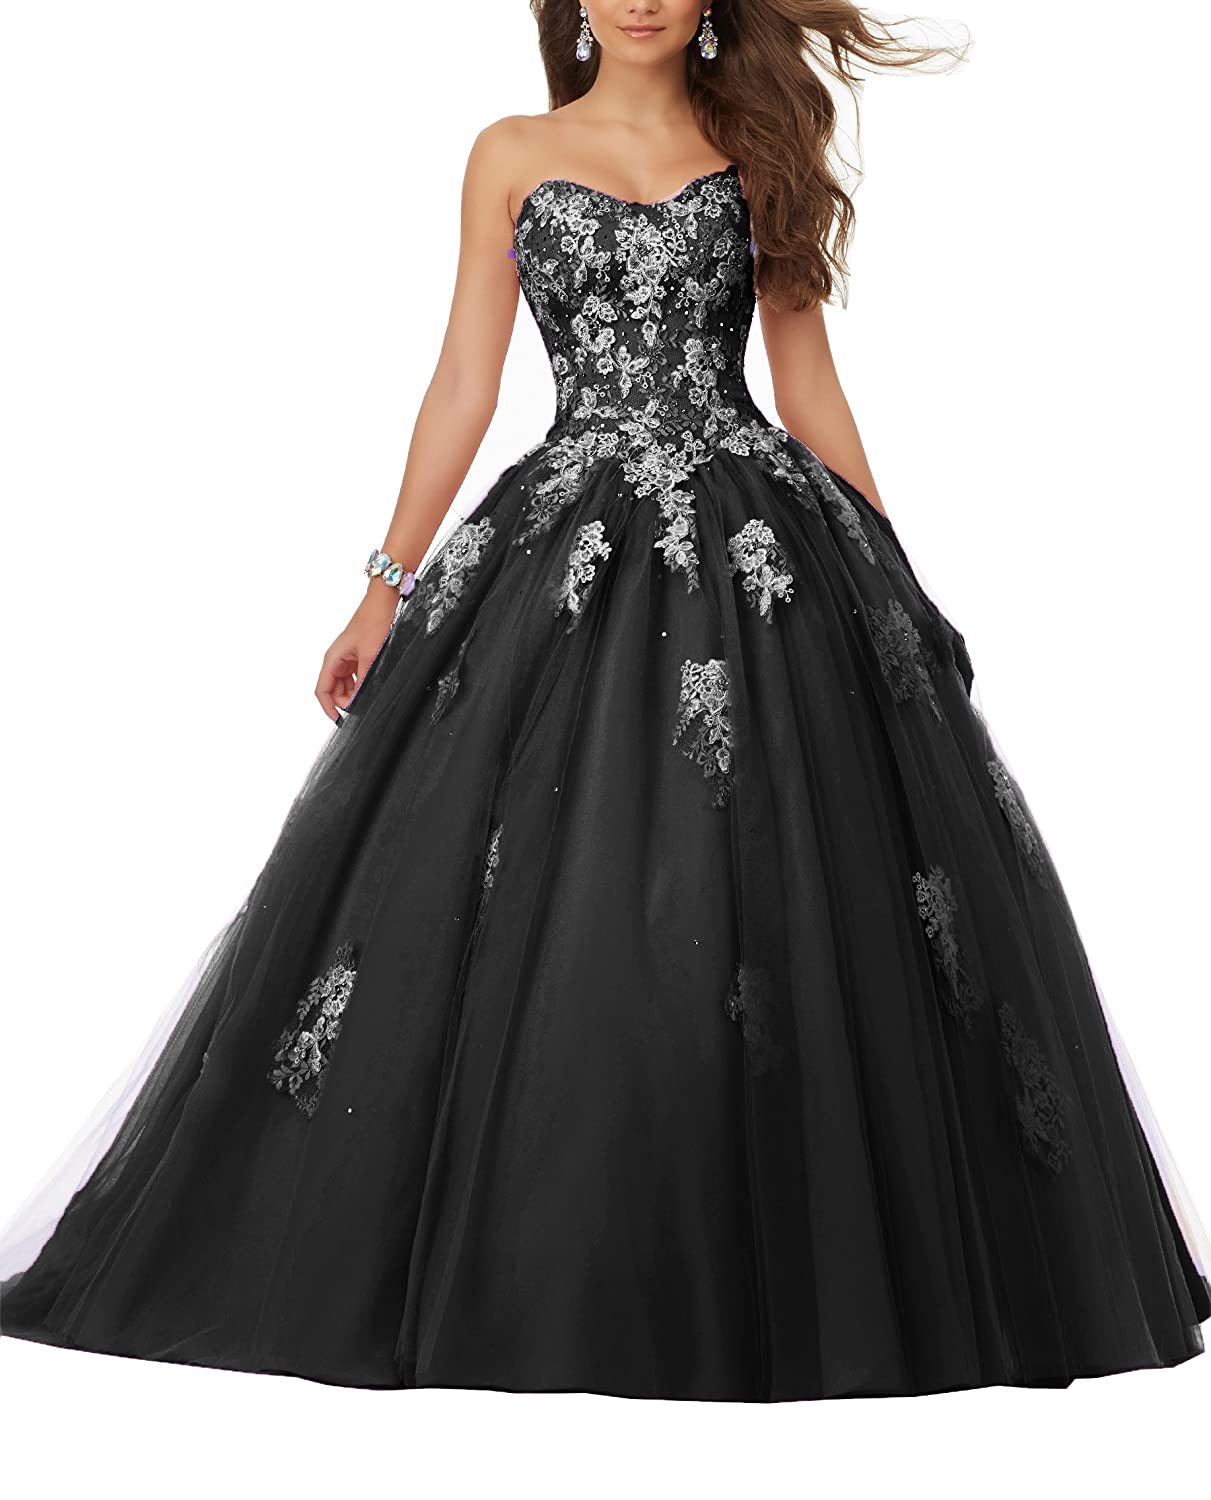 f6210bd1a7bca Eldecey Women s Sweetheart Lace Applique Sweet 16 Tulle Long Sleeveless Floor  Length Ball Gown Quinceanera Dress Light Black US10 at Amazon Women s  Clothing ...